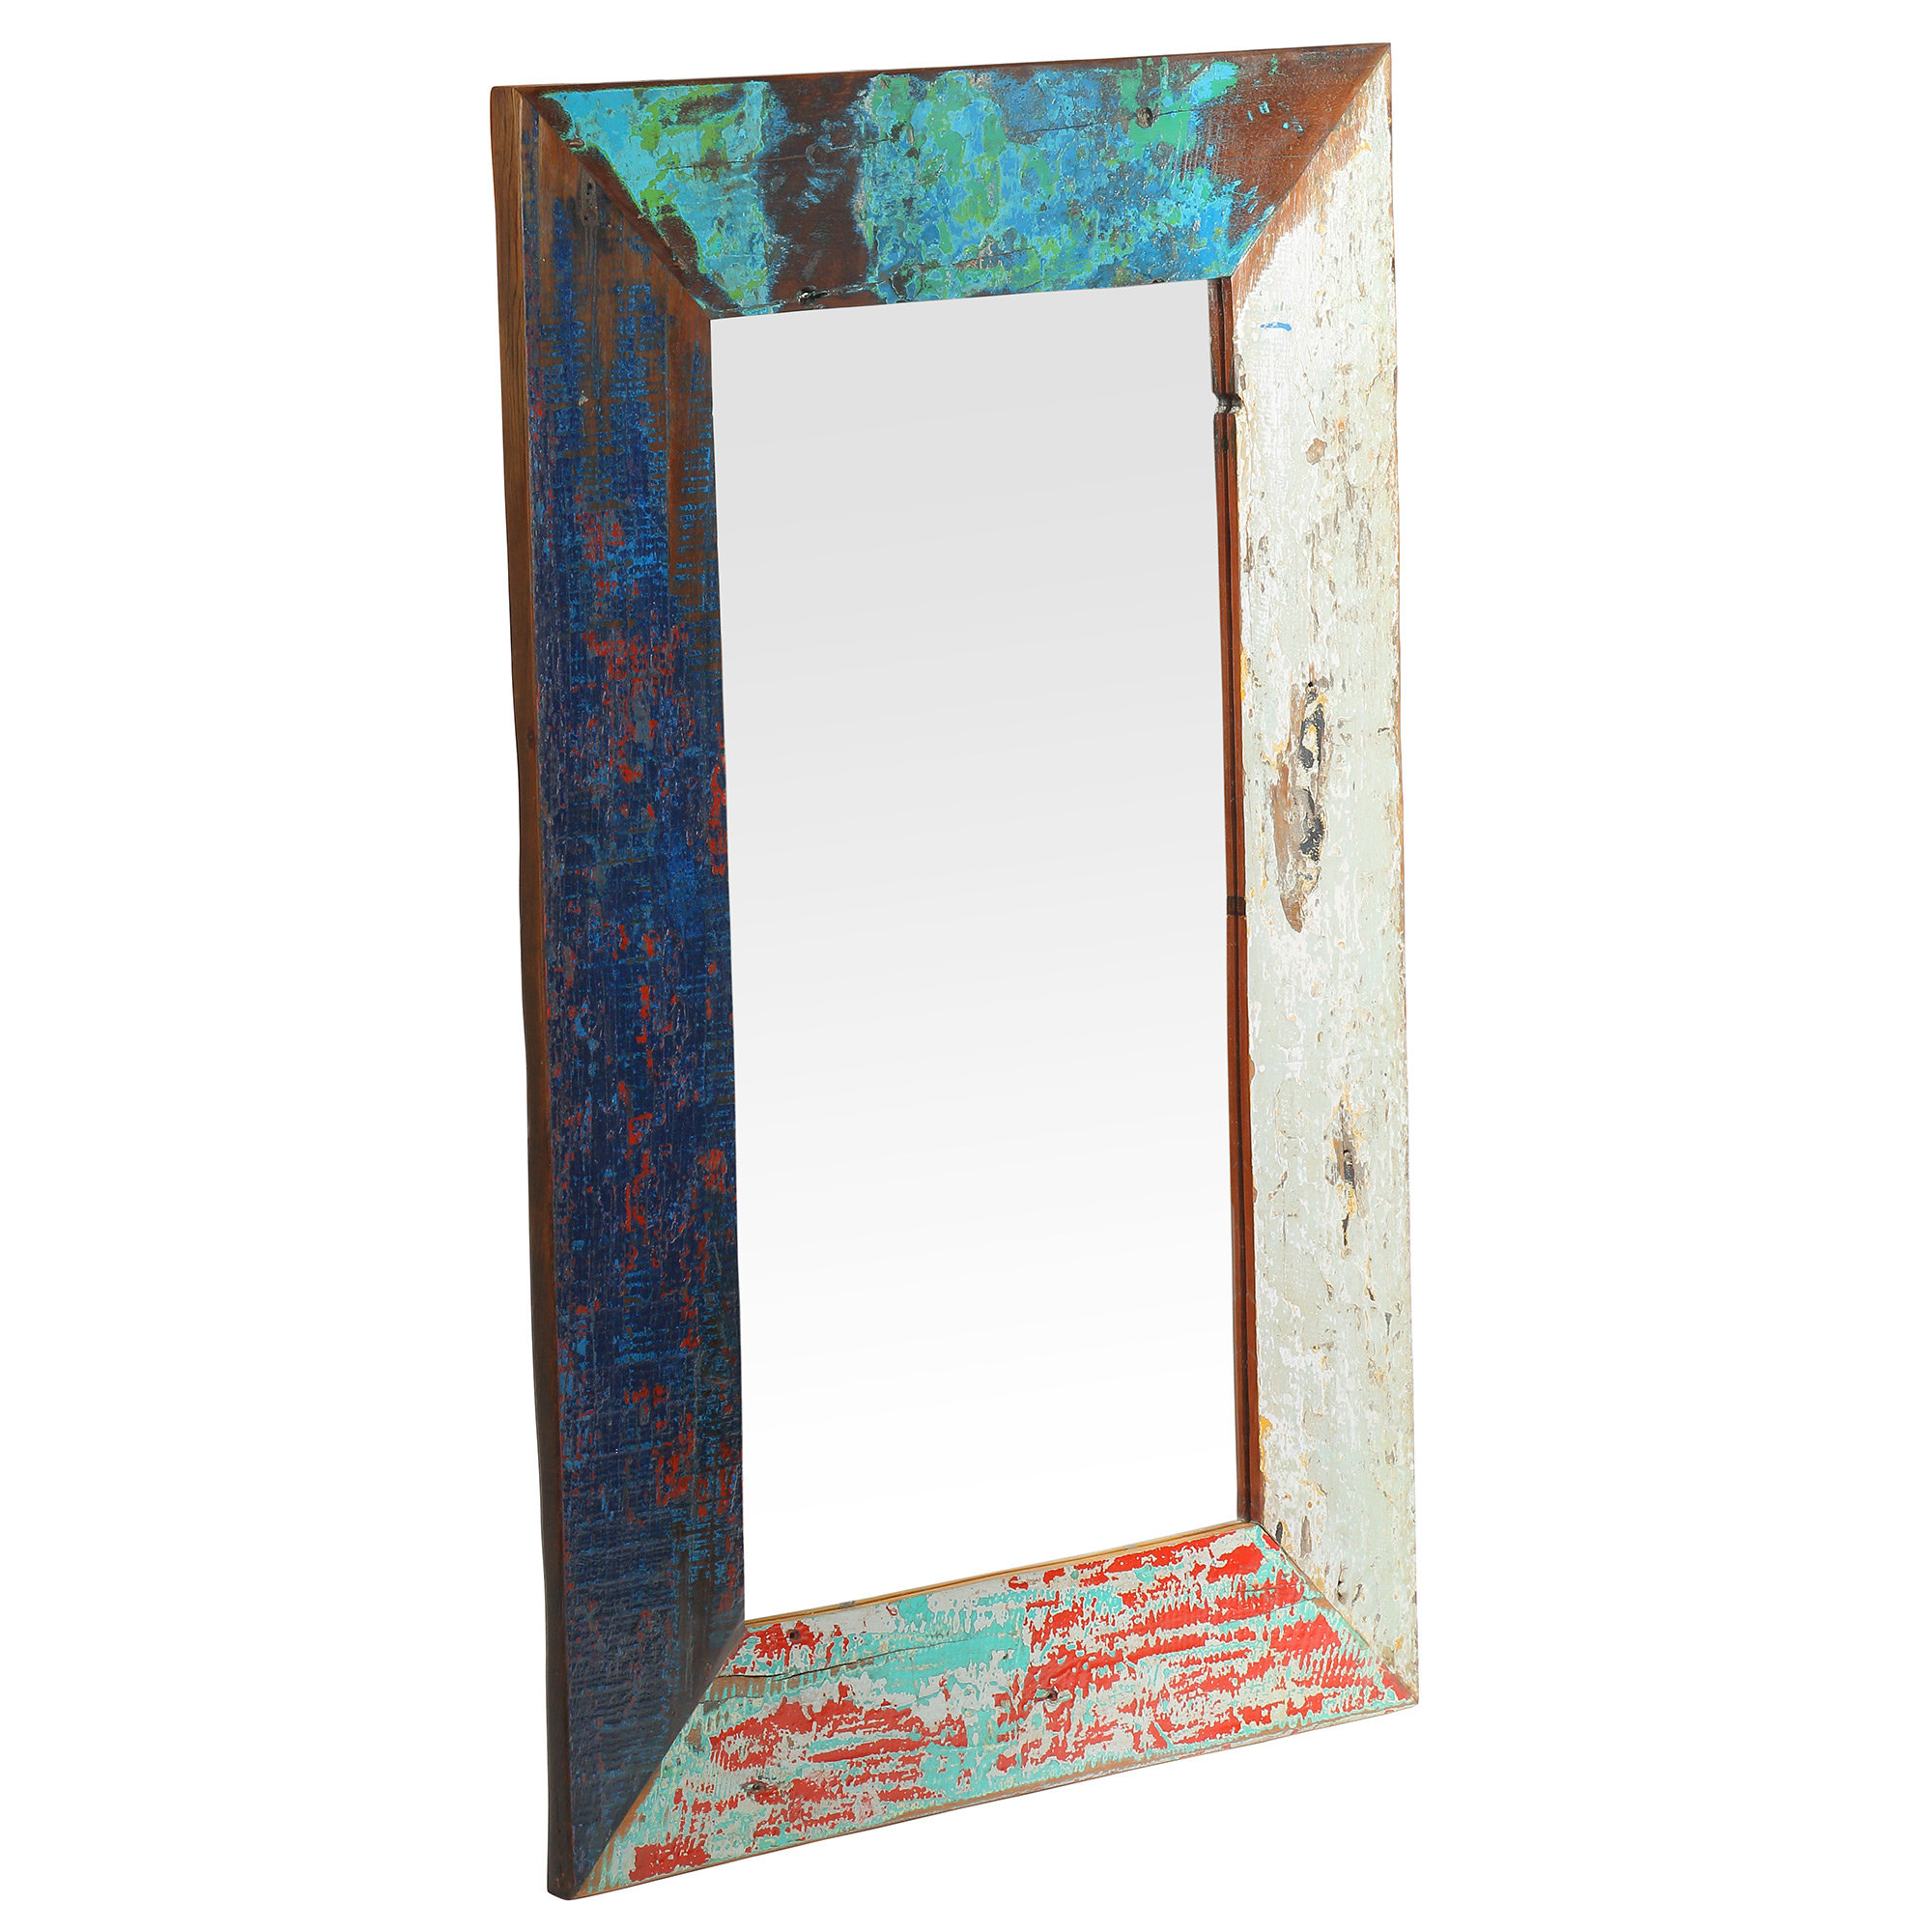 2019 Vintage Accent Mirror With Regard To Arrigo Accent Mirrors (View 9 of 20)